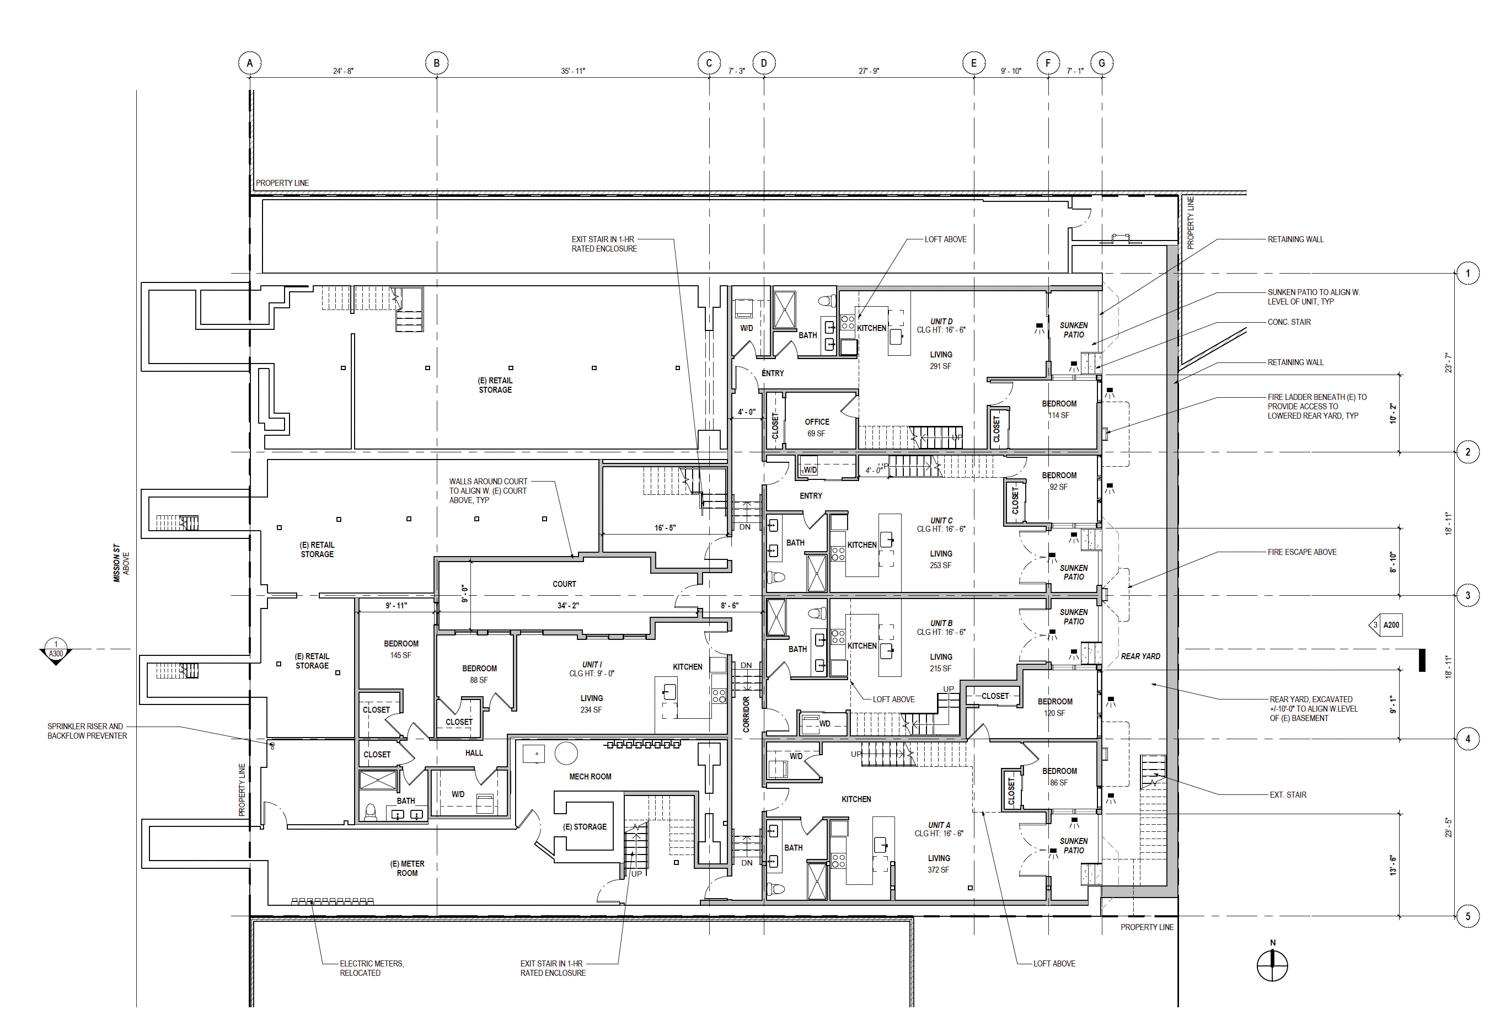 Proposed basement floor plan at 2619 Mission Street, by Open Scope Architecture